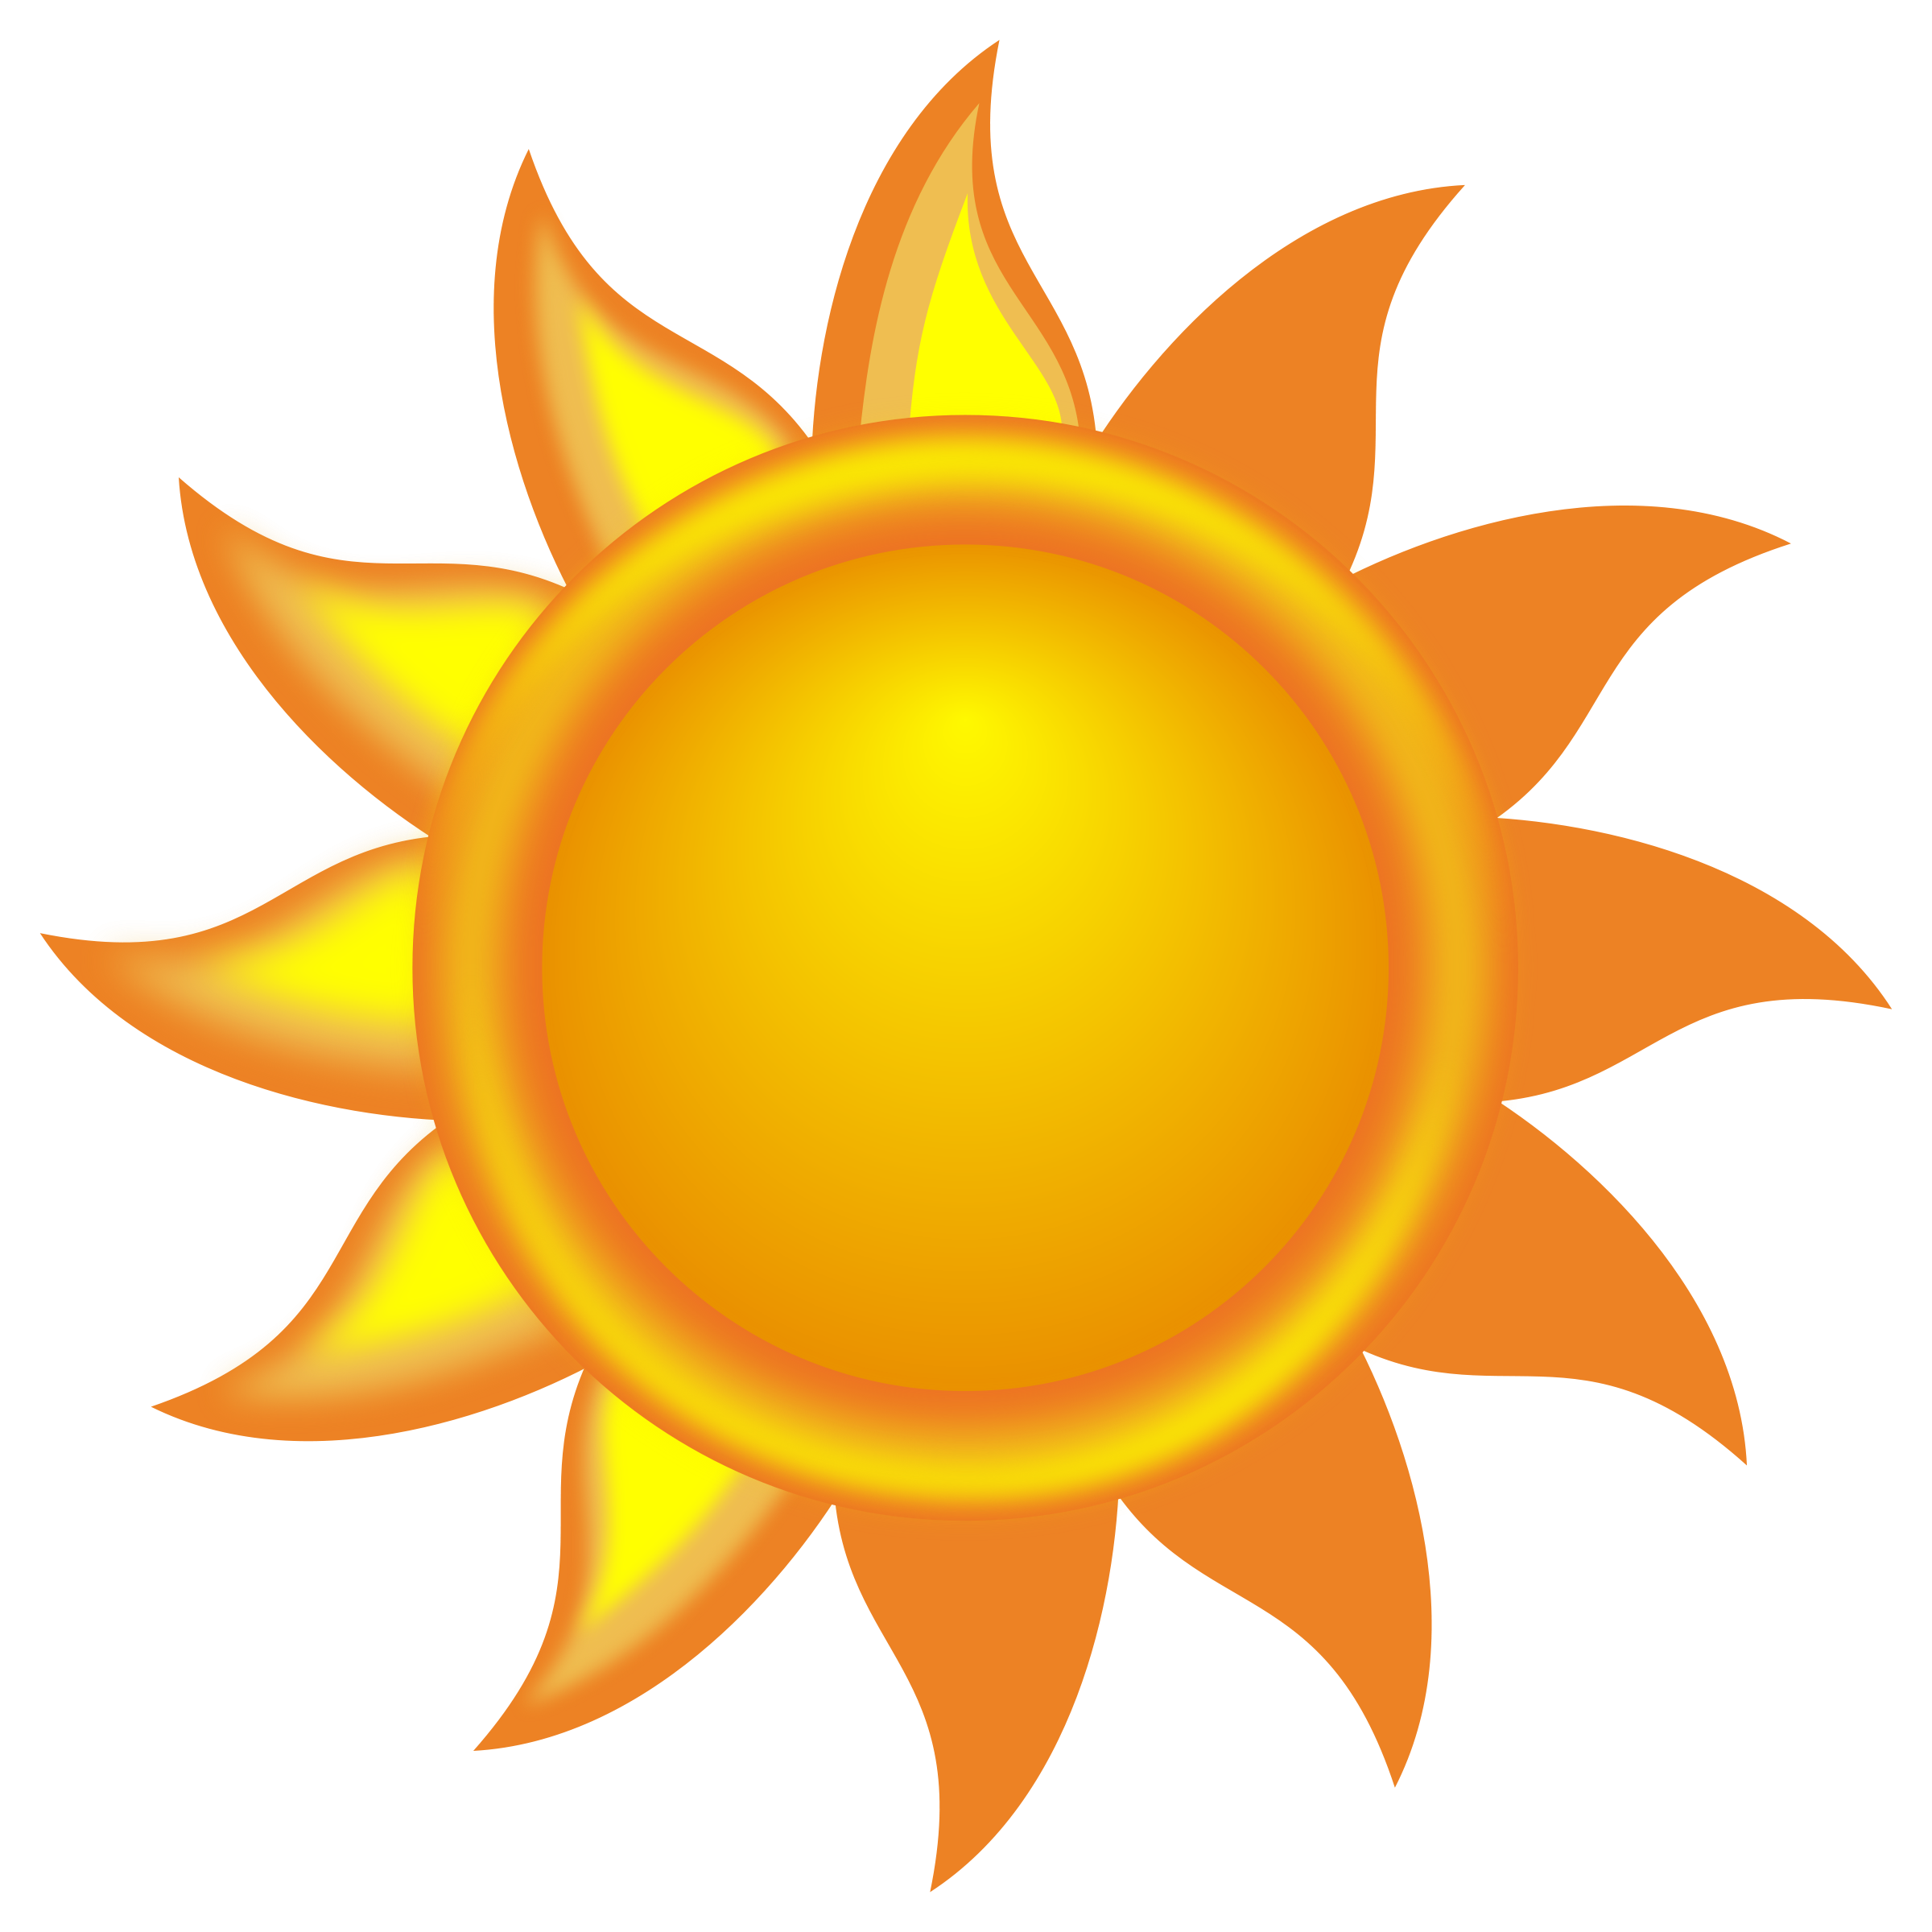 Sun Png PNG Image - Sun PNG